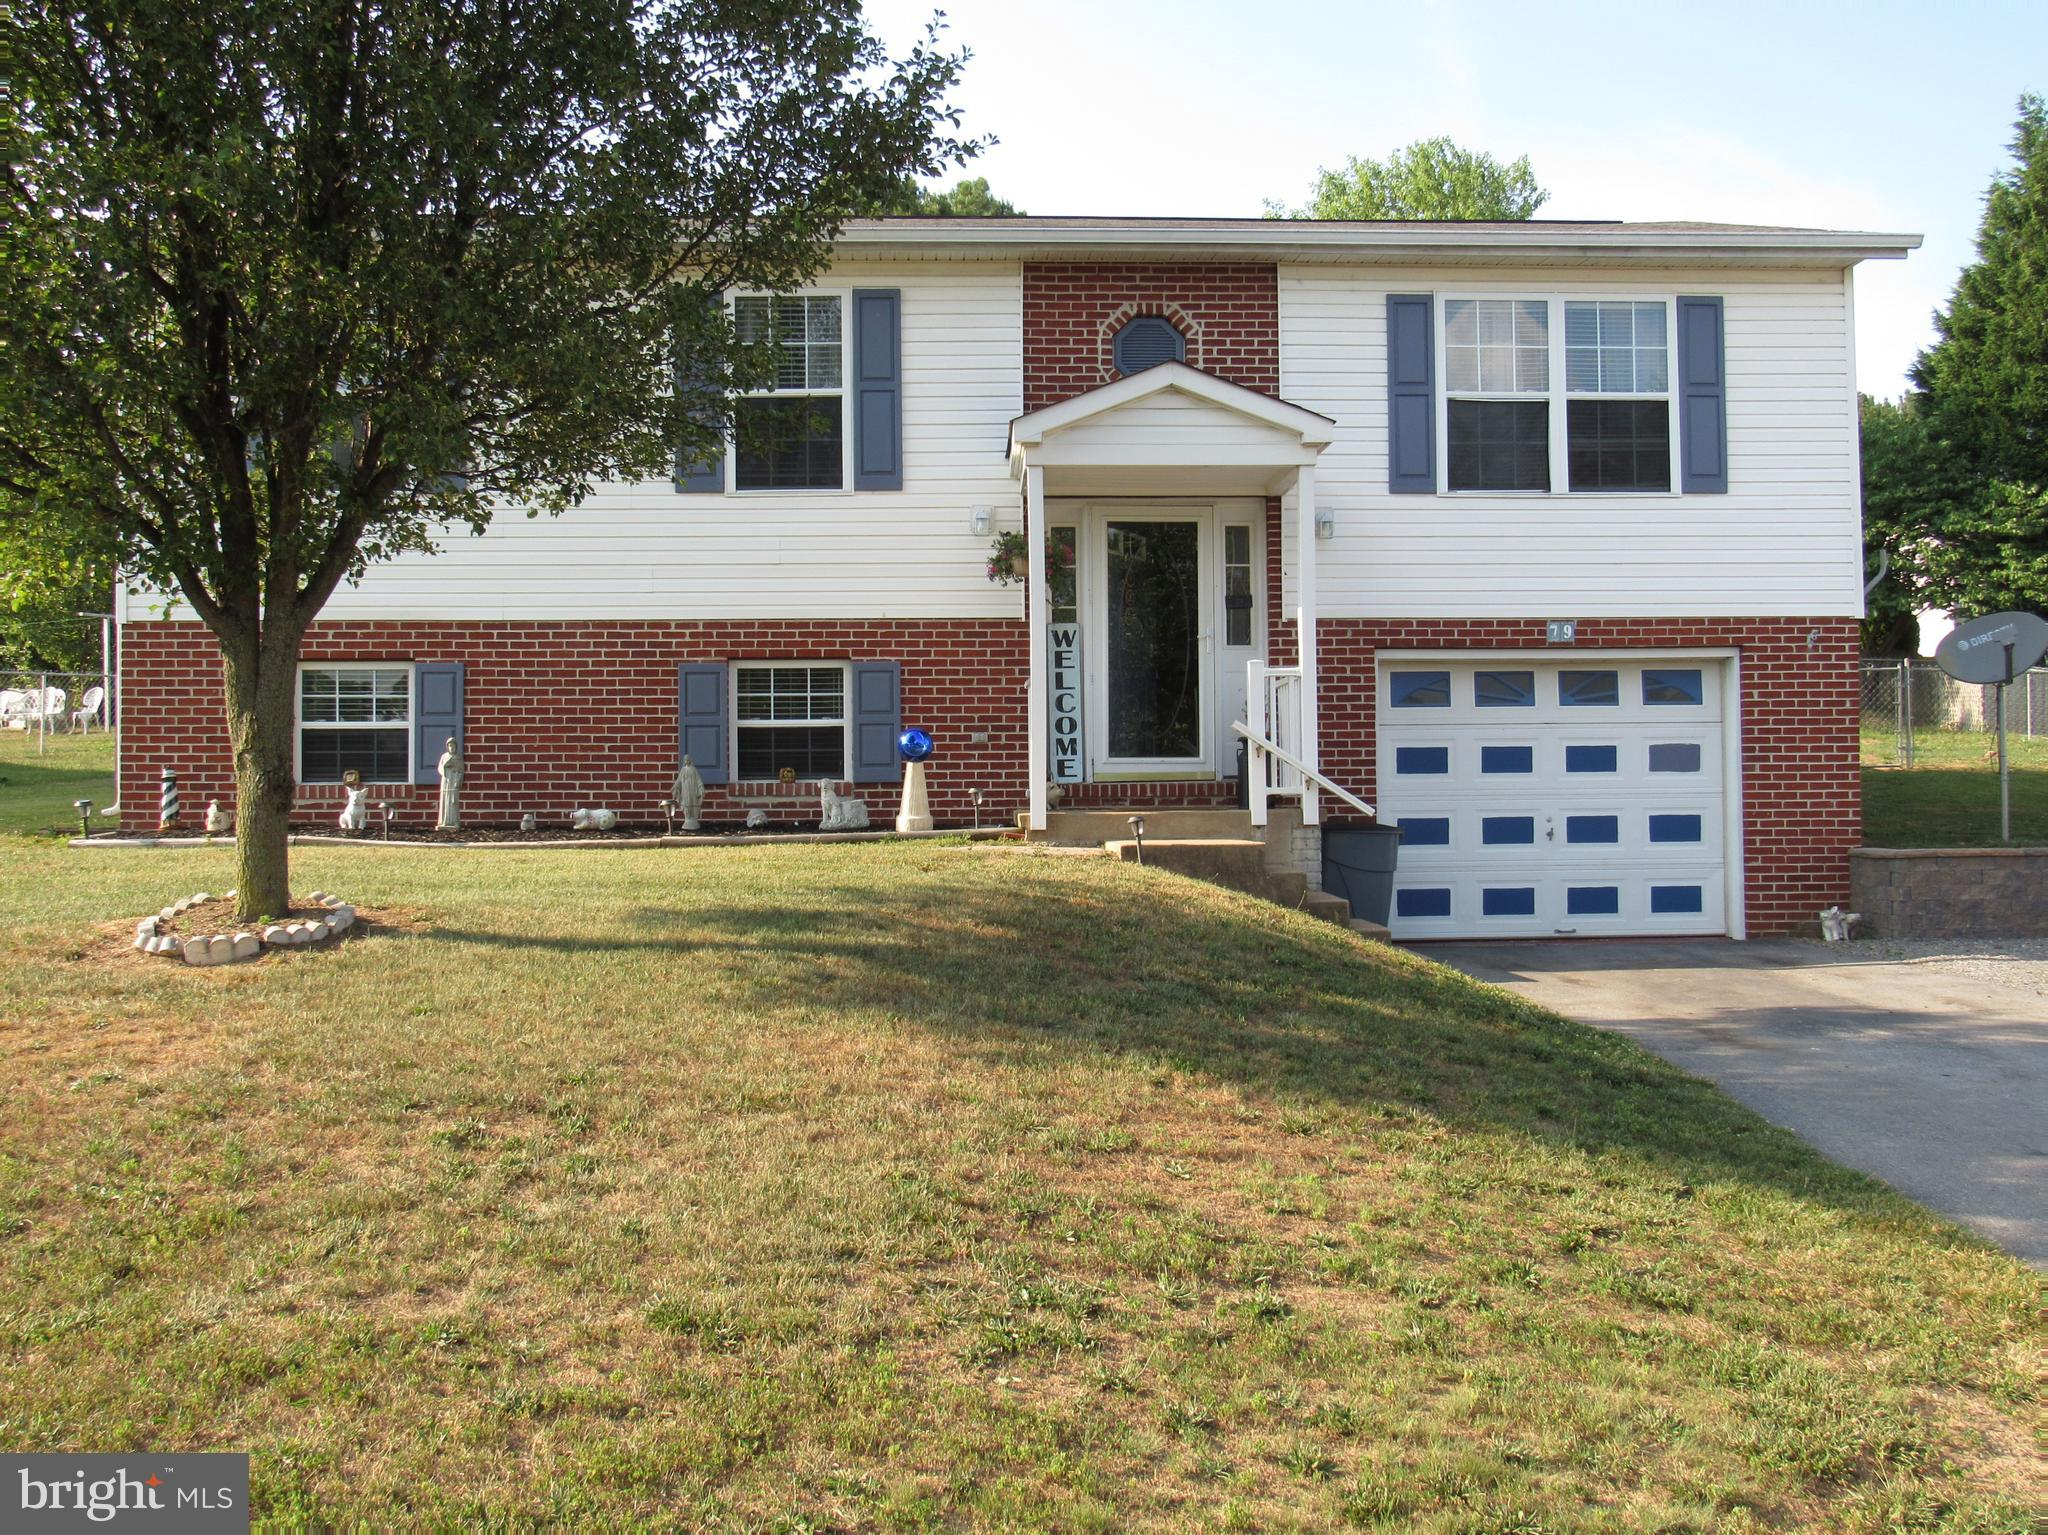 79 Grove Farm Ln, Martinsburg, WV, 25404